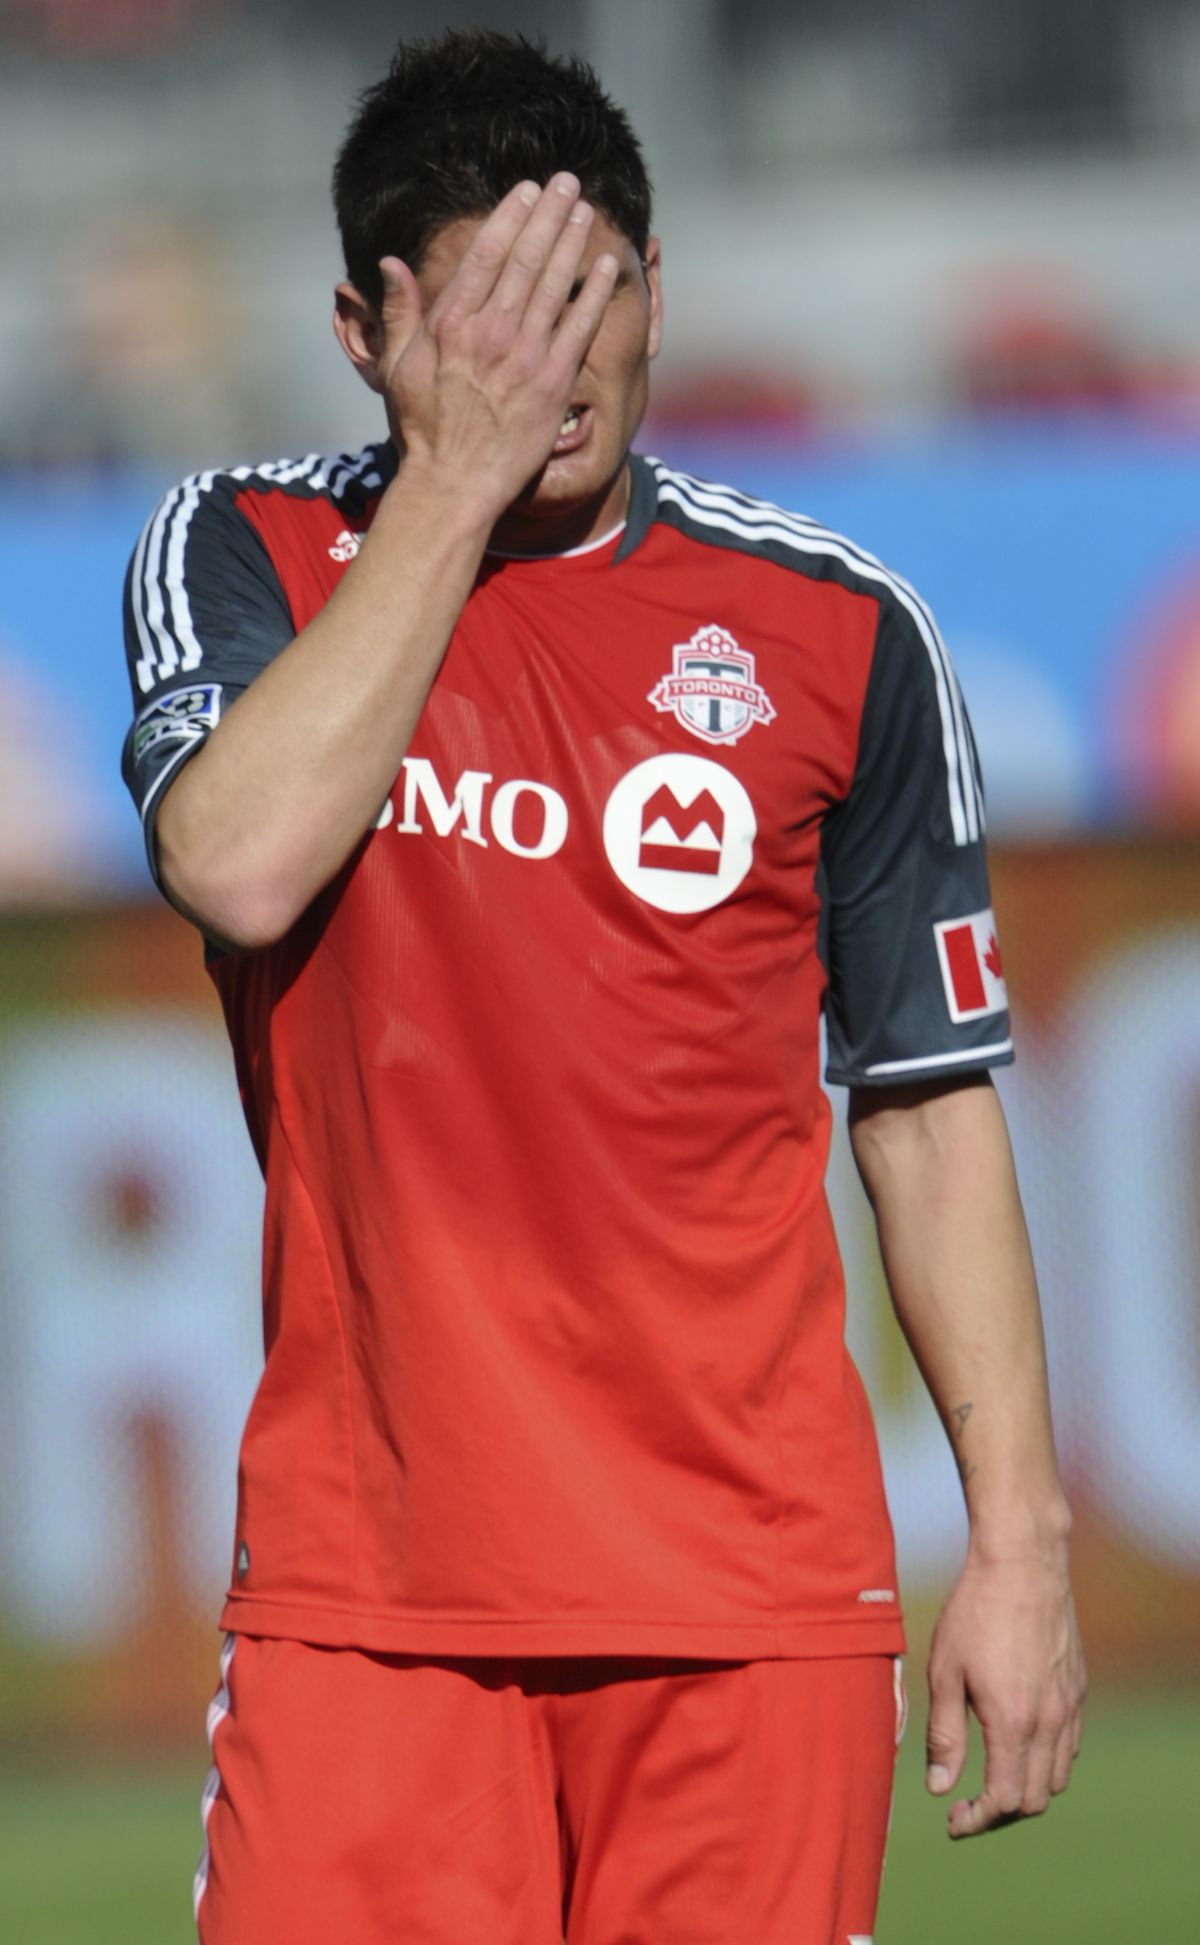 12-05-05 - TORONTO, ONTARIO - TFCs Miguel Aceval, wipes his face with his hand, near the end of the